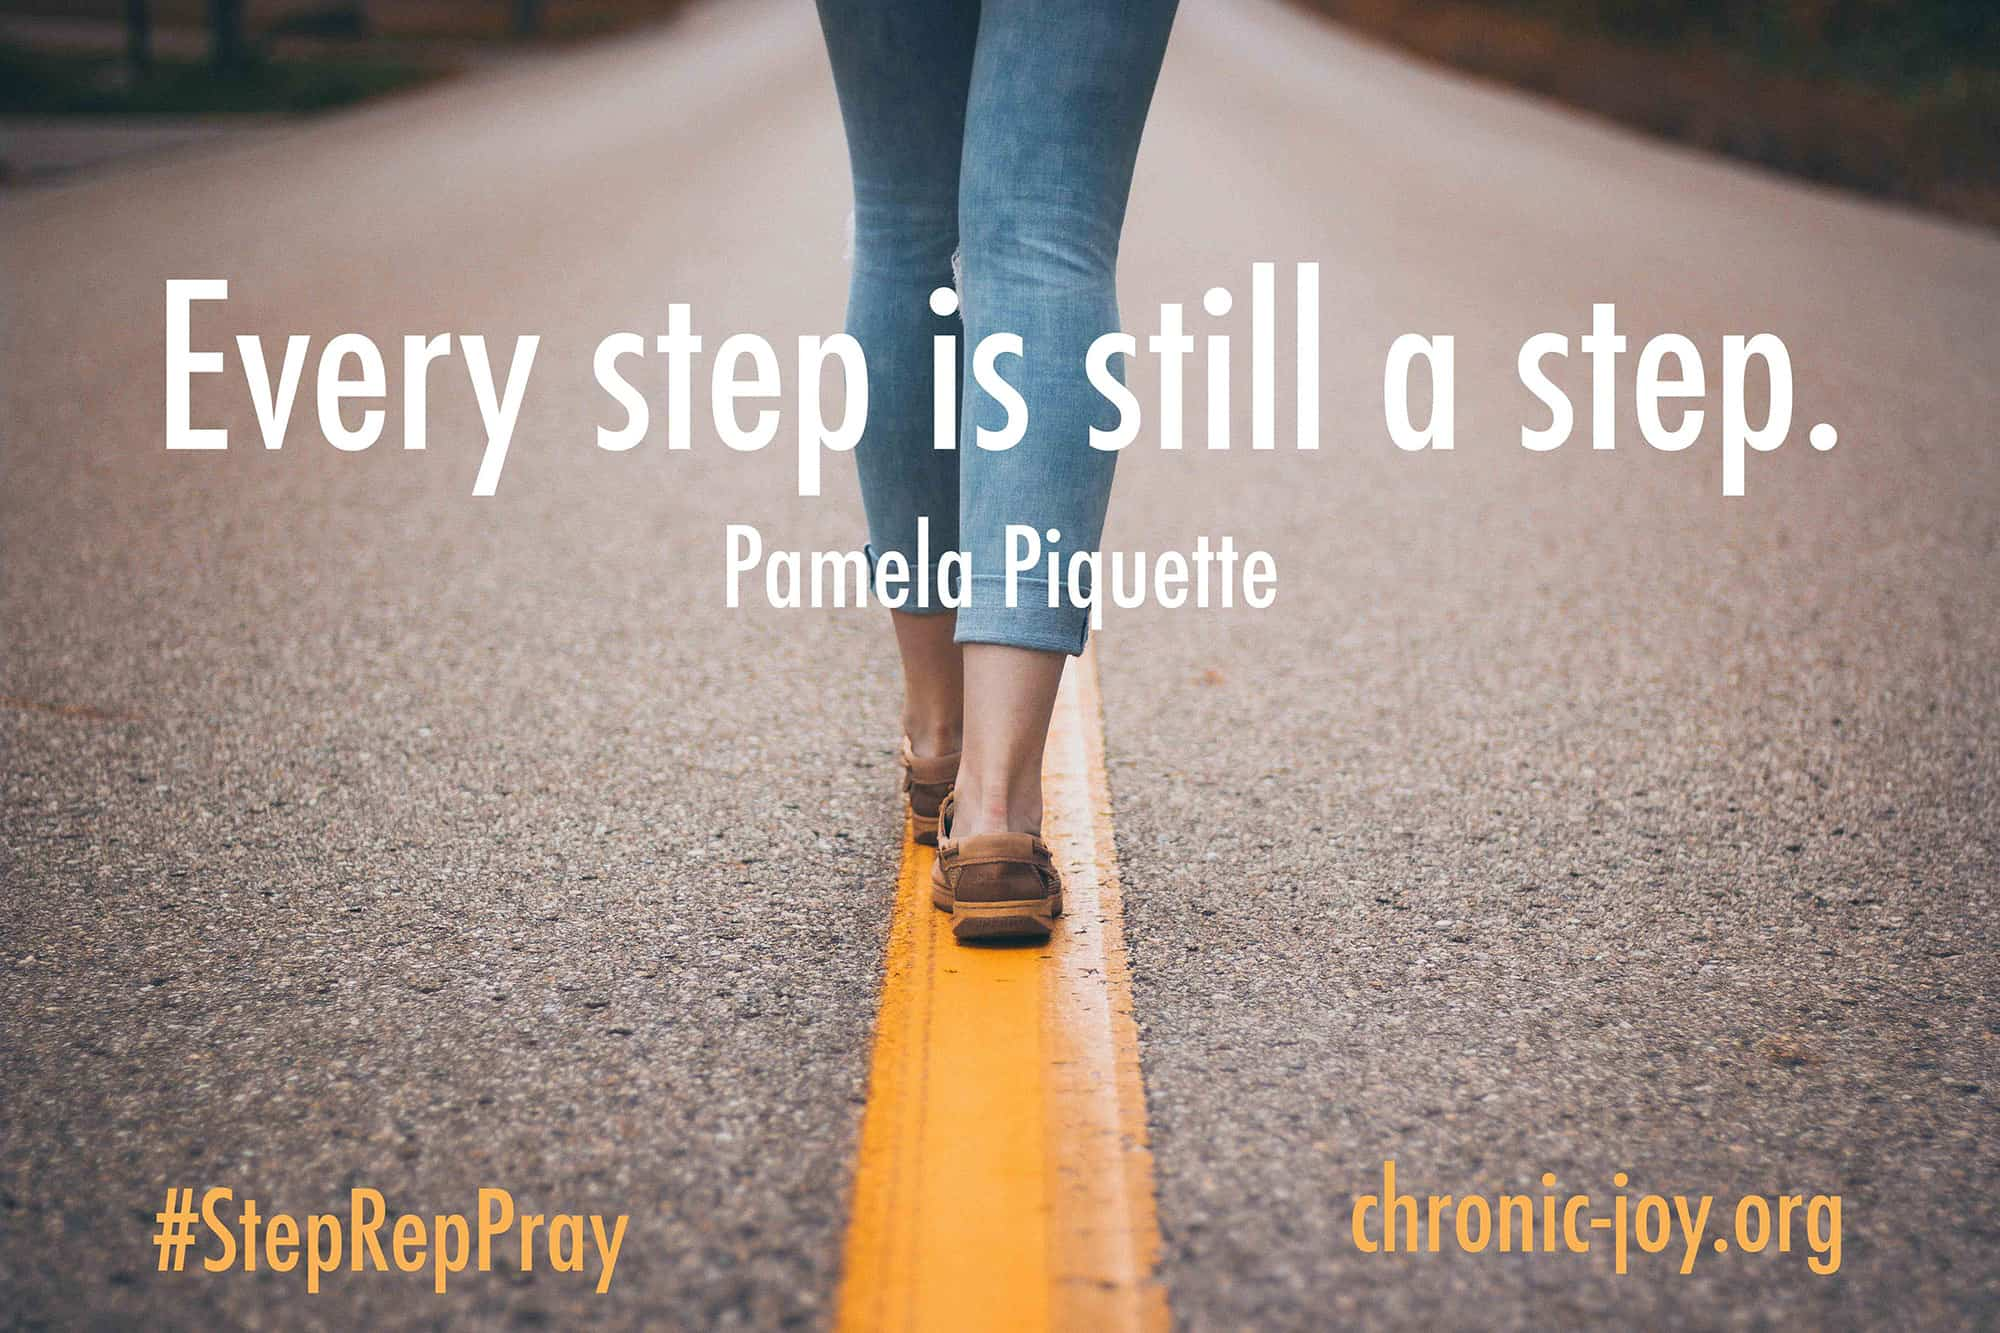 Every step is still a step.